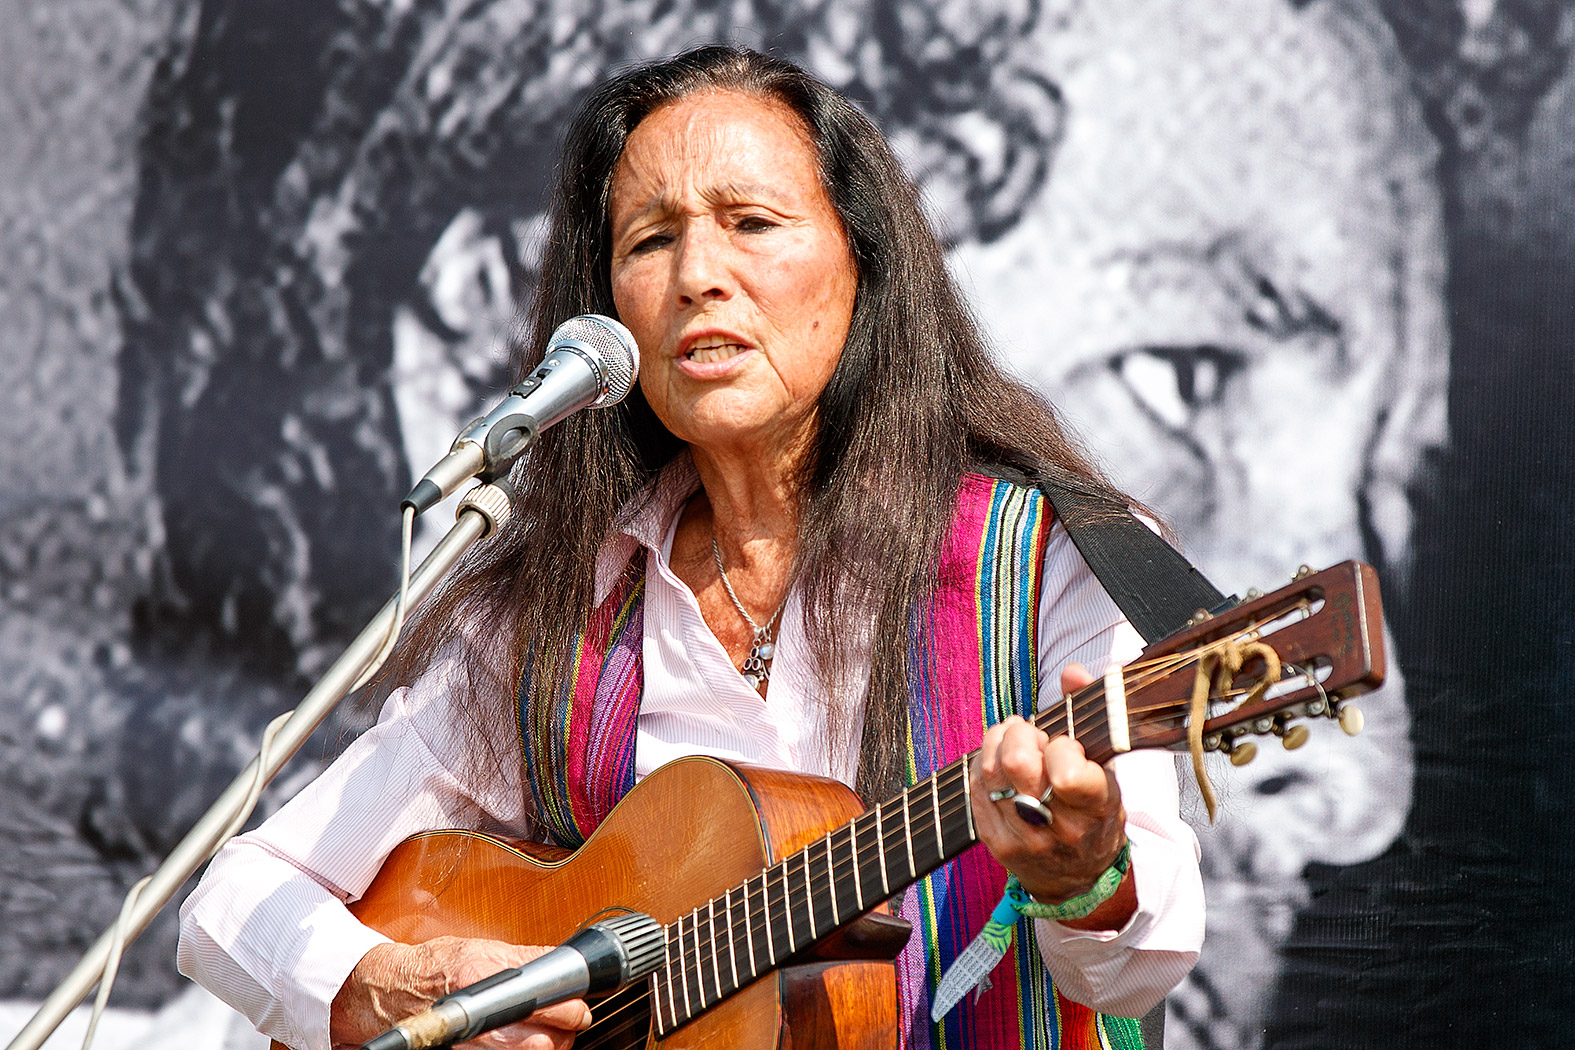 Incredible: Julie Felix plays against a vintage backdrop of Dylan on the 1969 Festival site in Wootton, IoW, on Tuesday, 27/8/19.